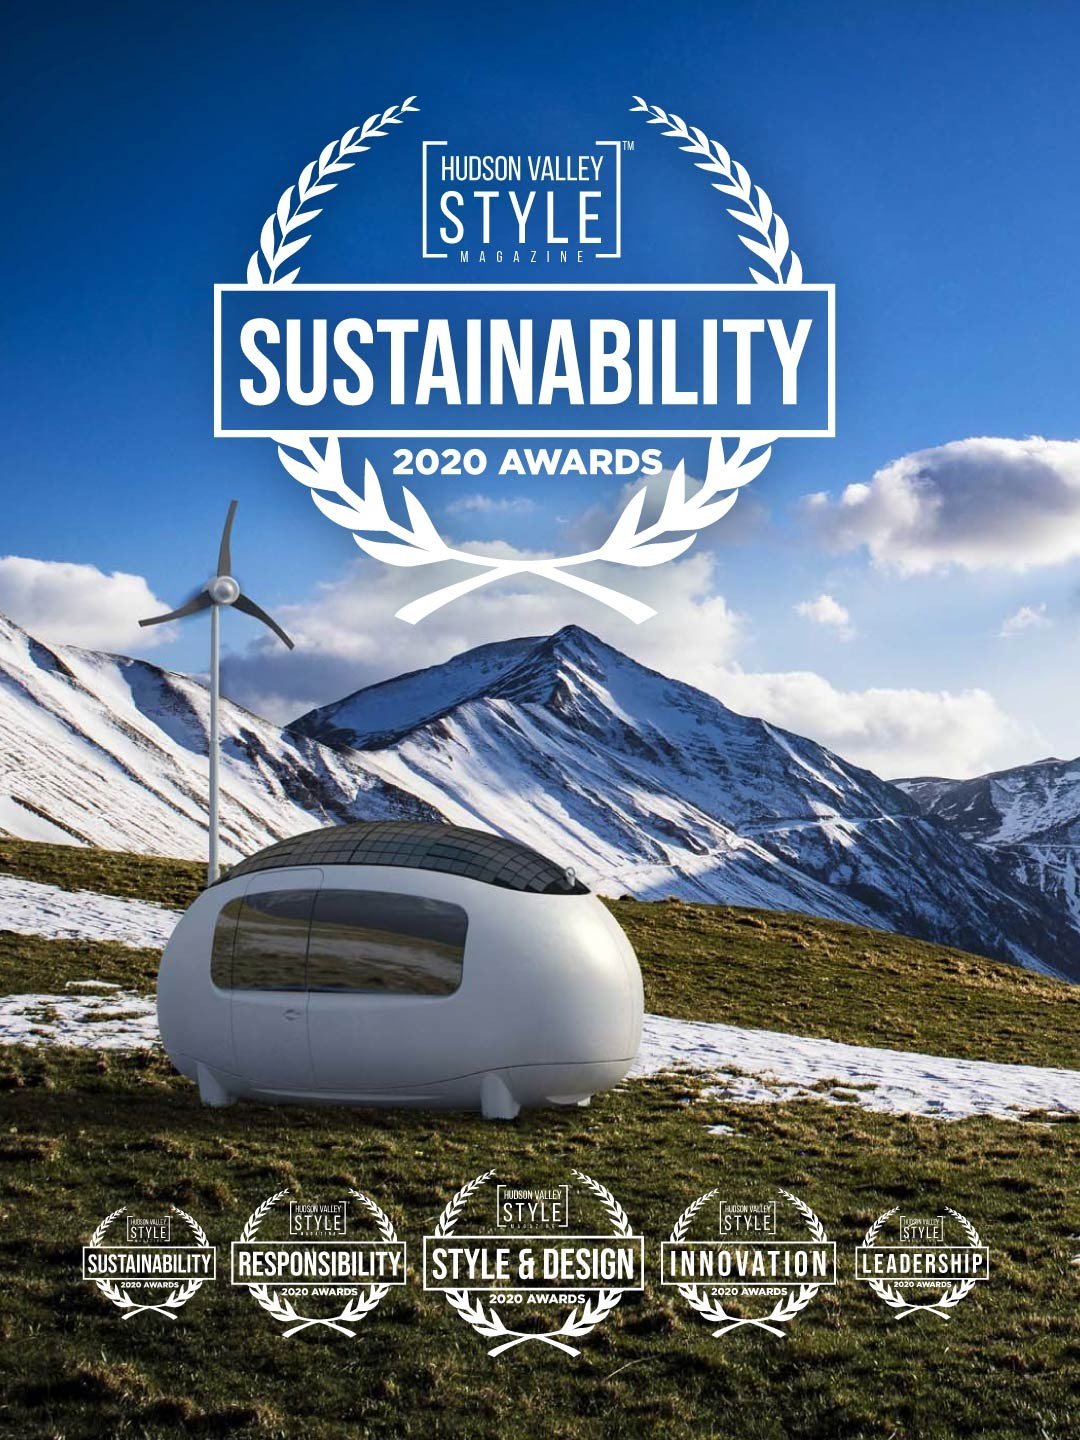 2020 Hudson Valley Style Magazine Awards Nomination: EcoCapsule - Sustainable off-grid micro-home - Sustainability and Social Responsibility